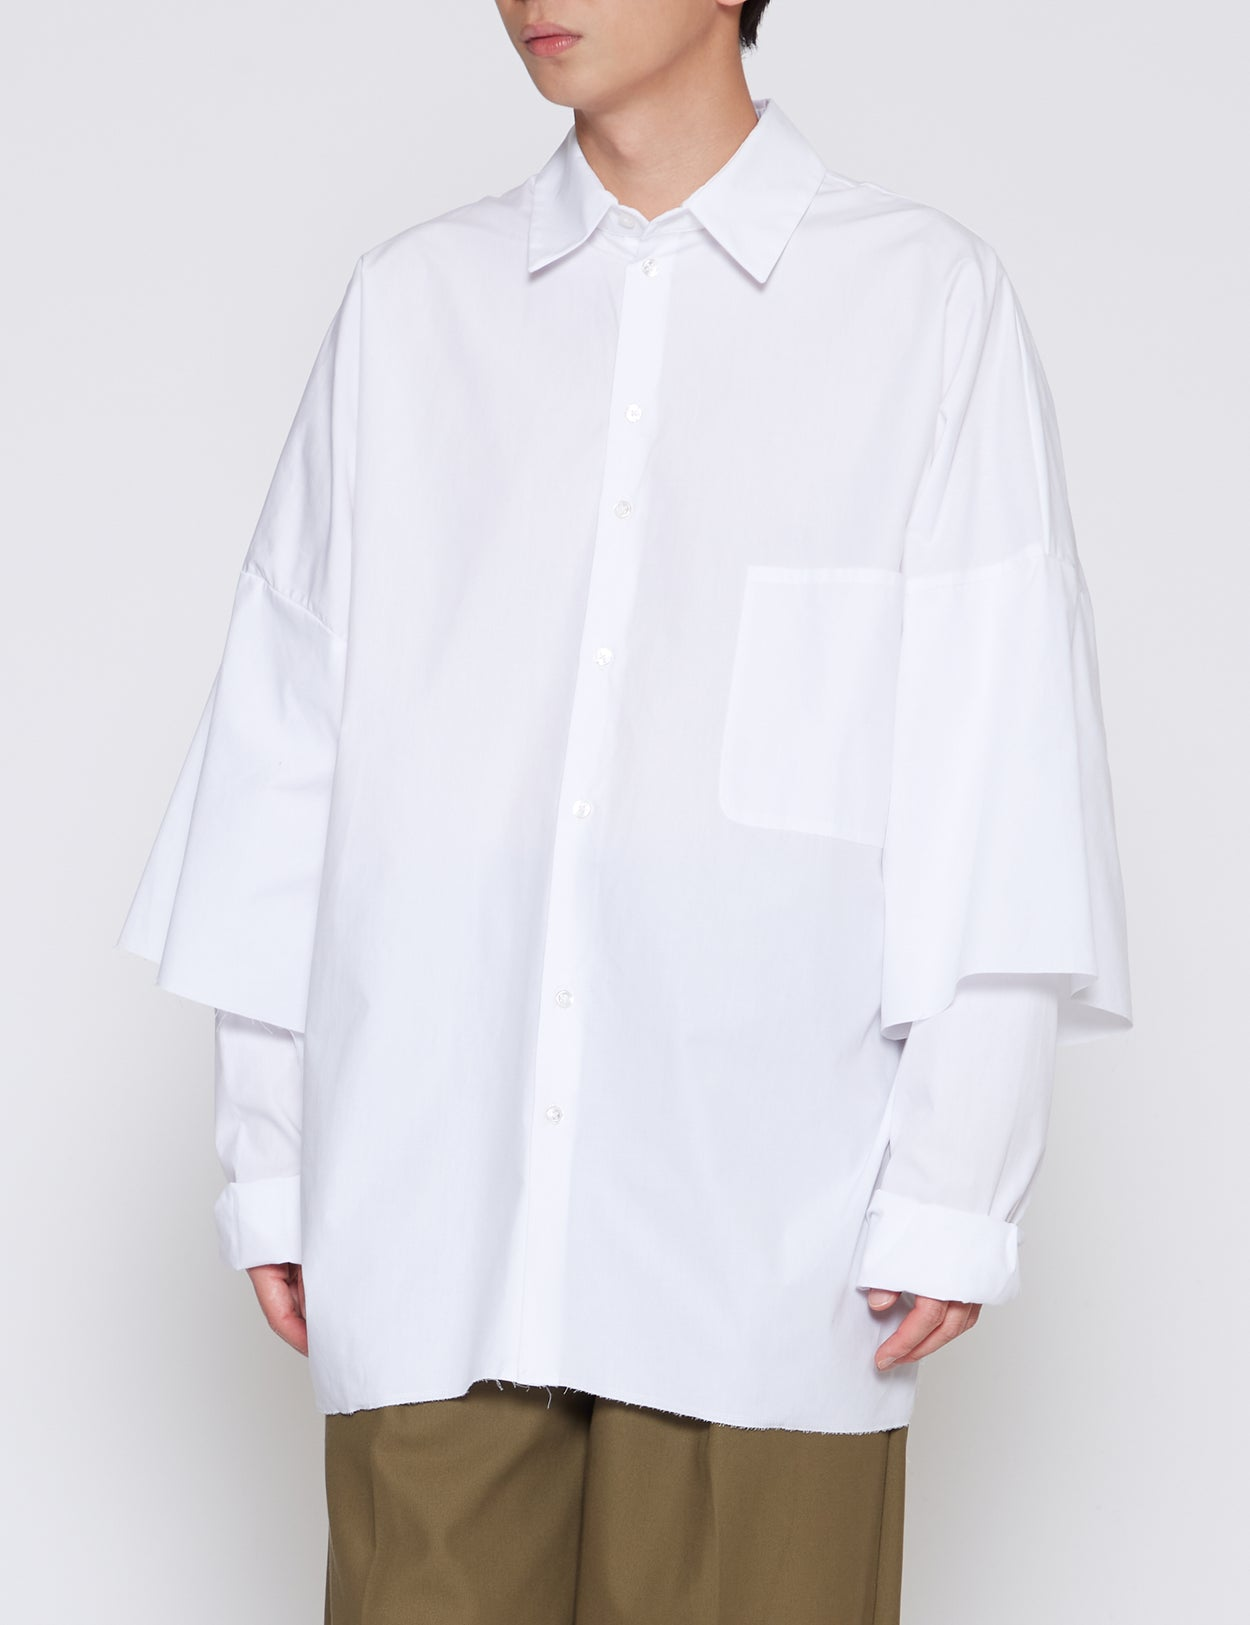 WHITE DOUBLE SLEEVE SHIRT